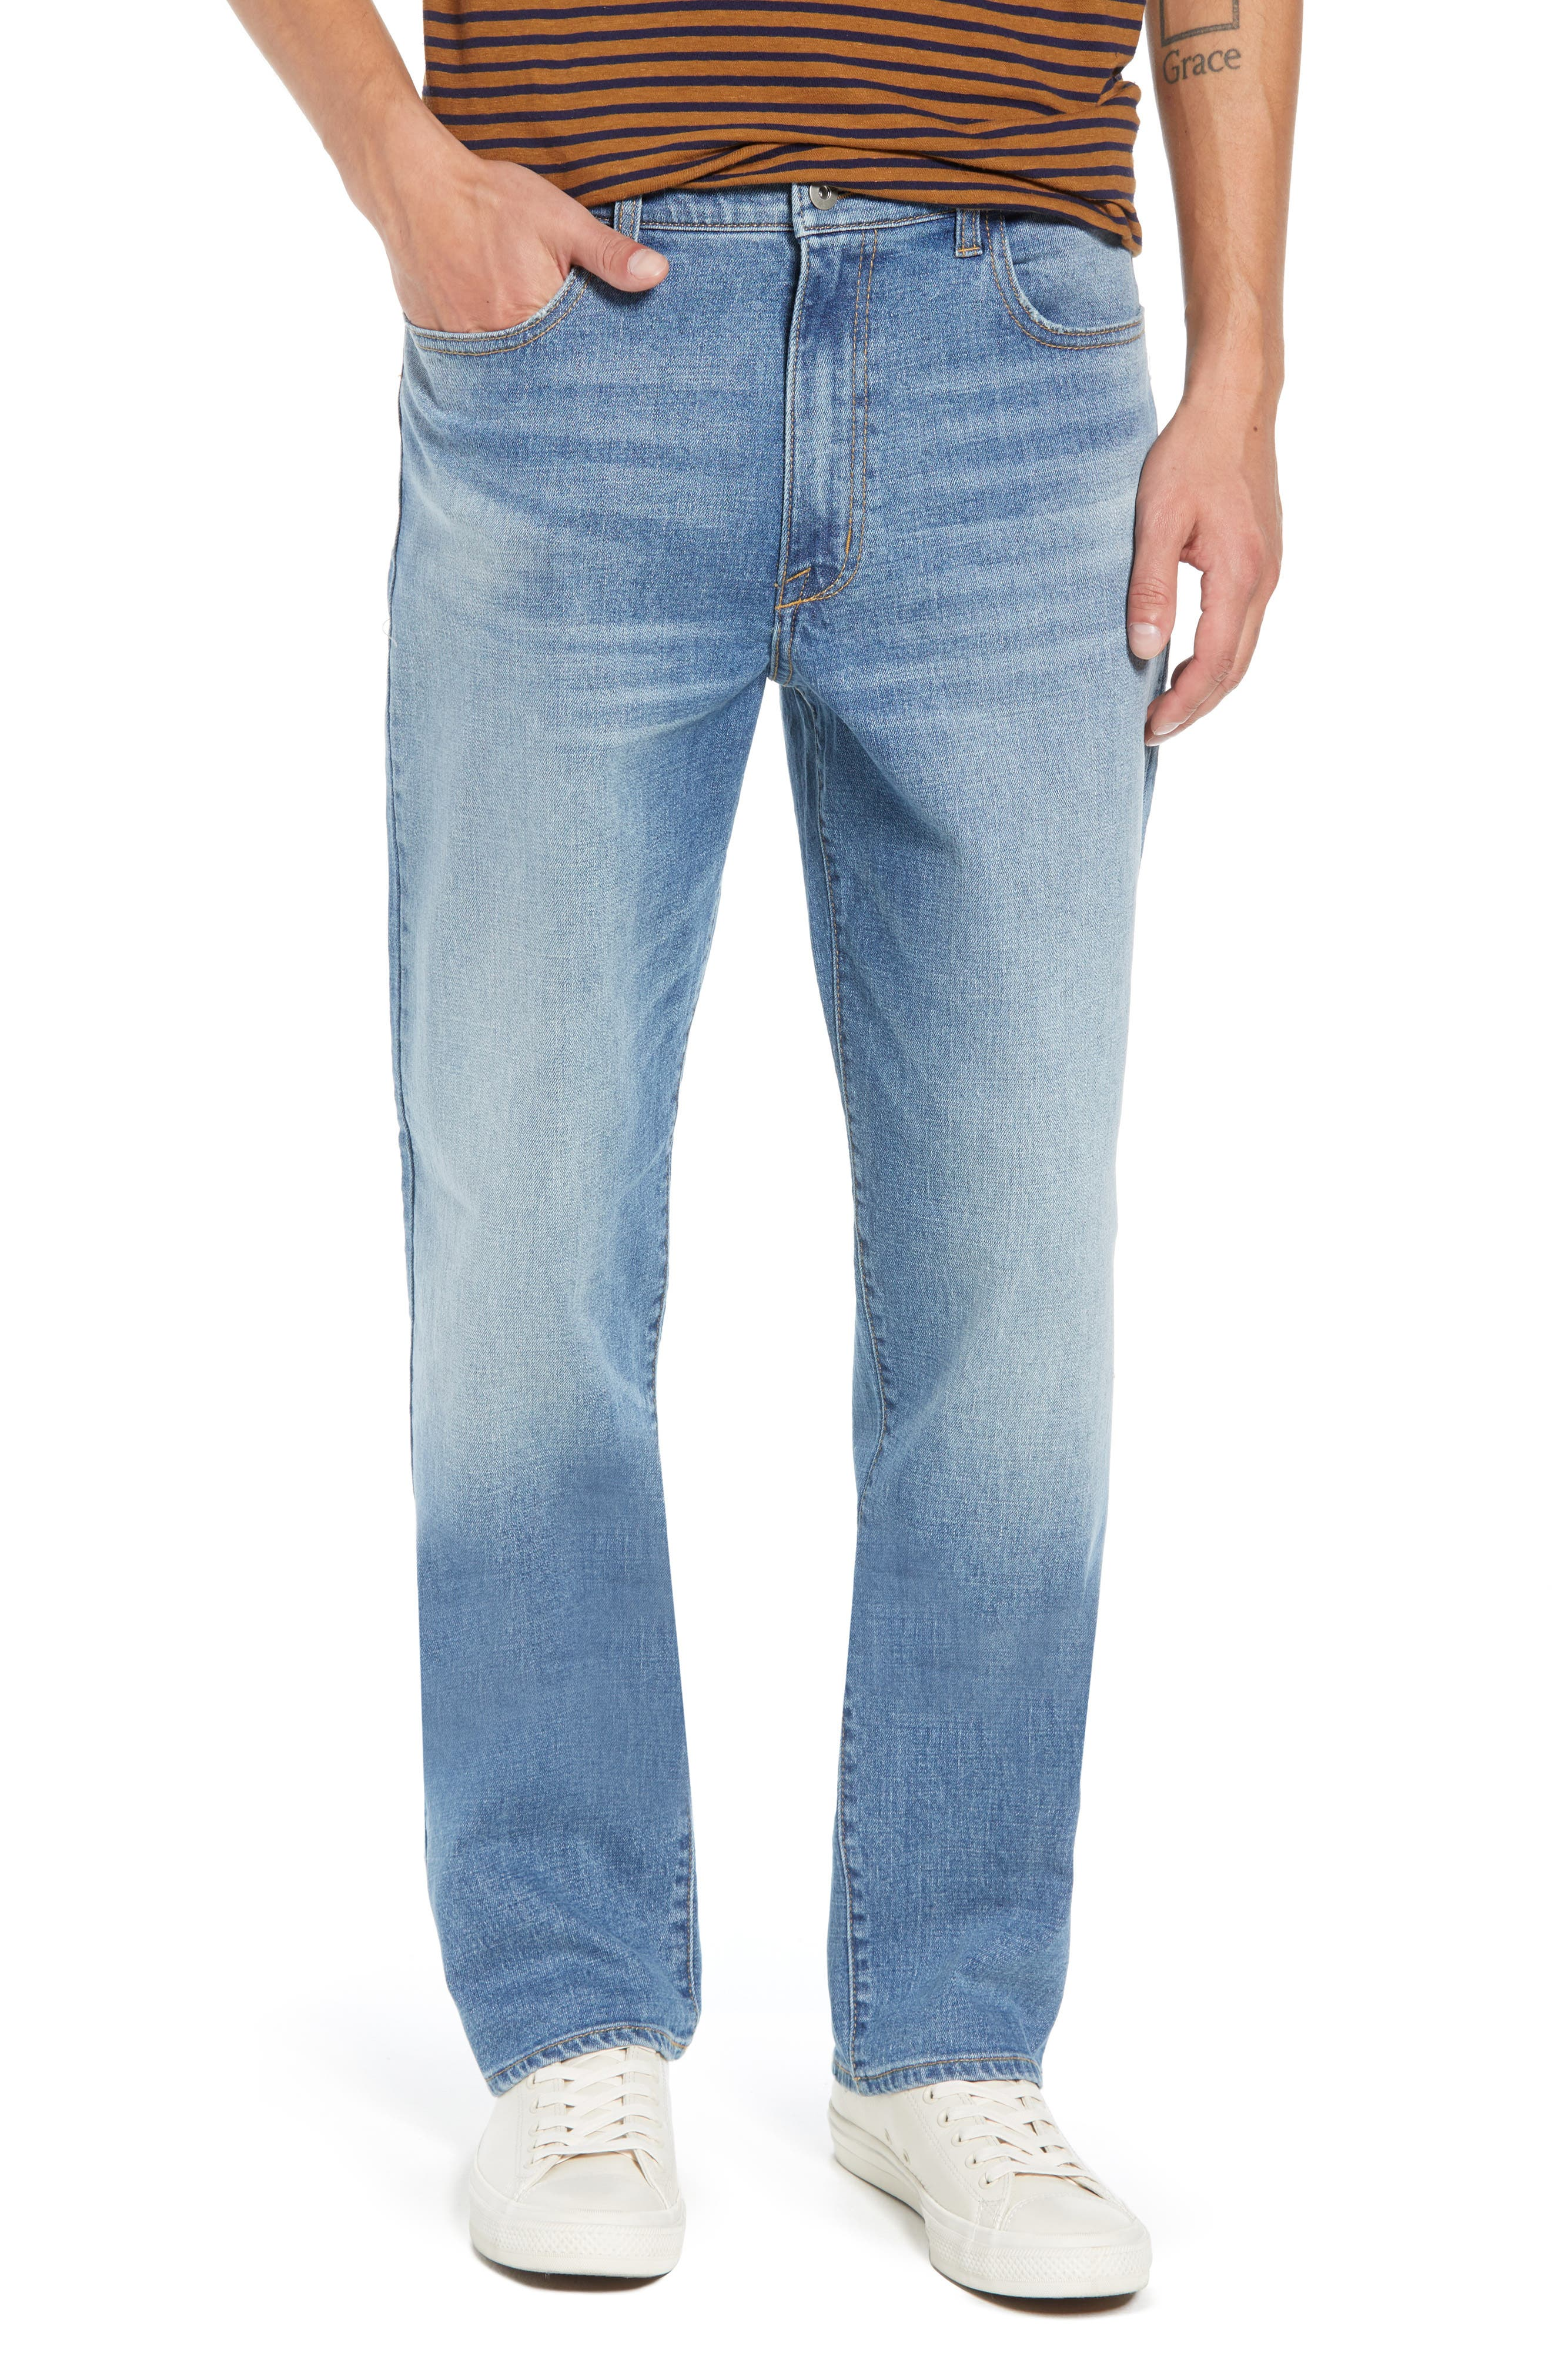 Straight Leg Jeans,                             Main thumbnail 1, color,                             BLUE EVAN WASH